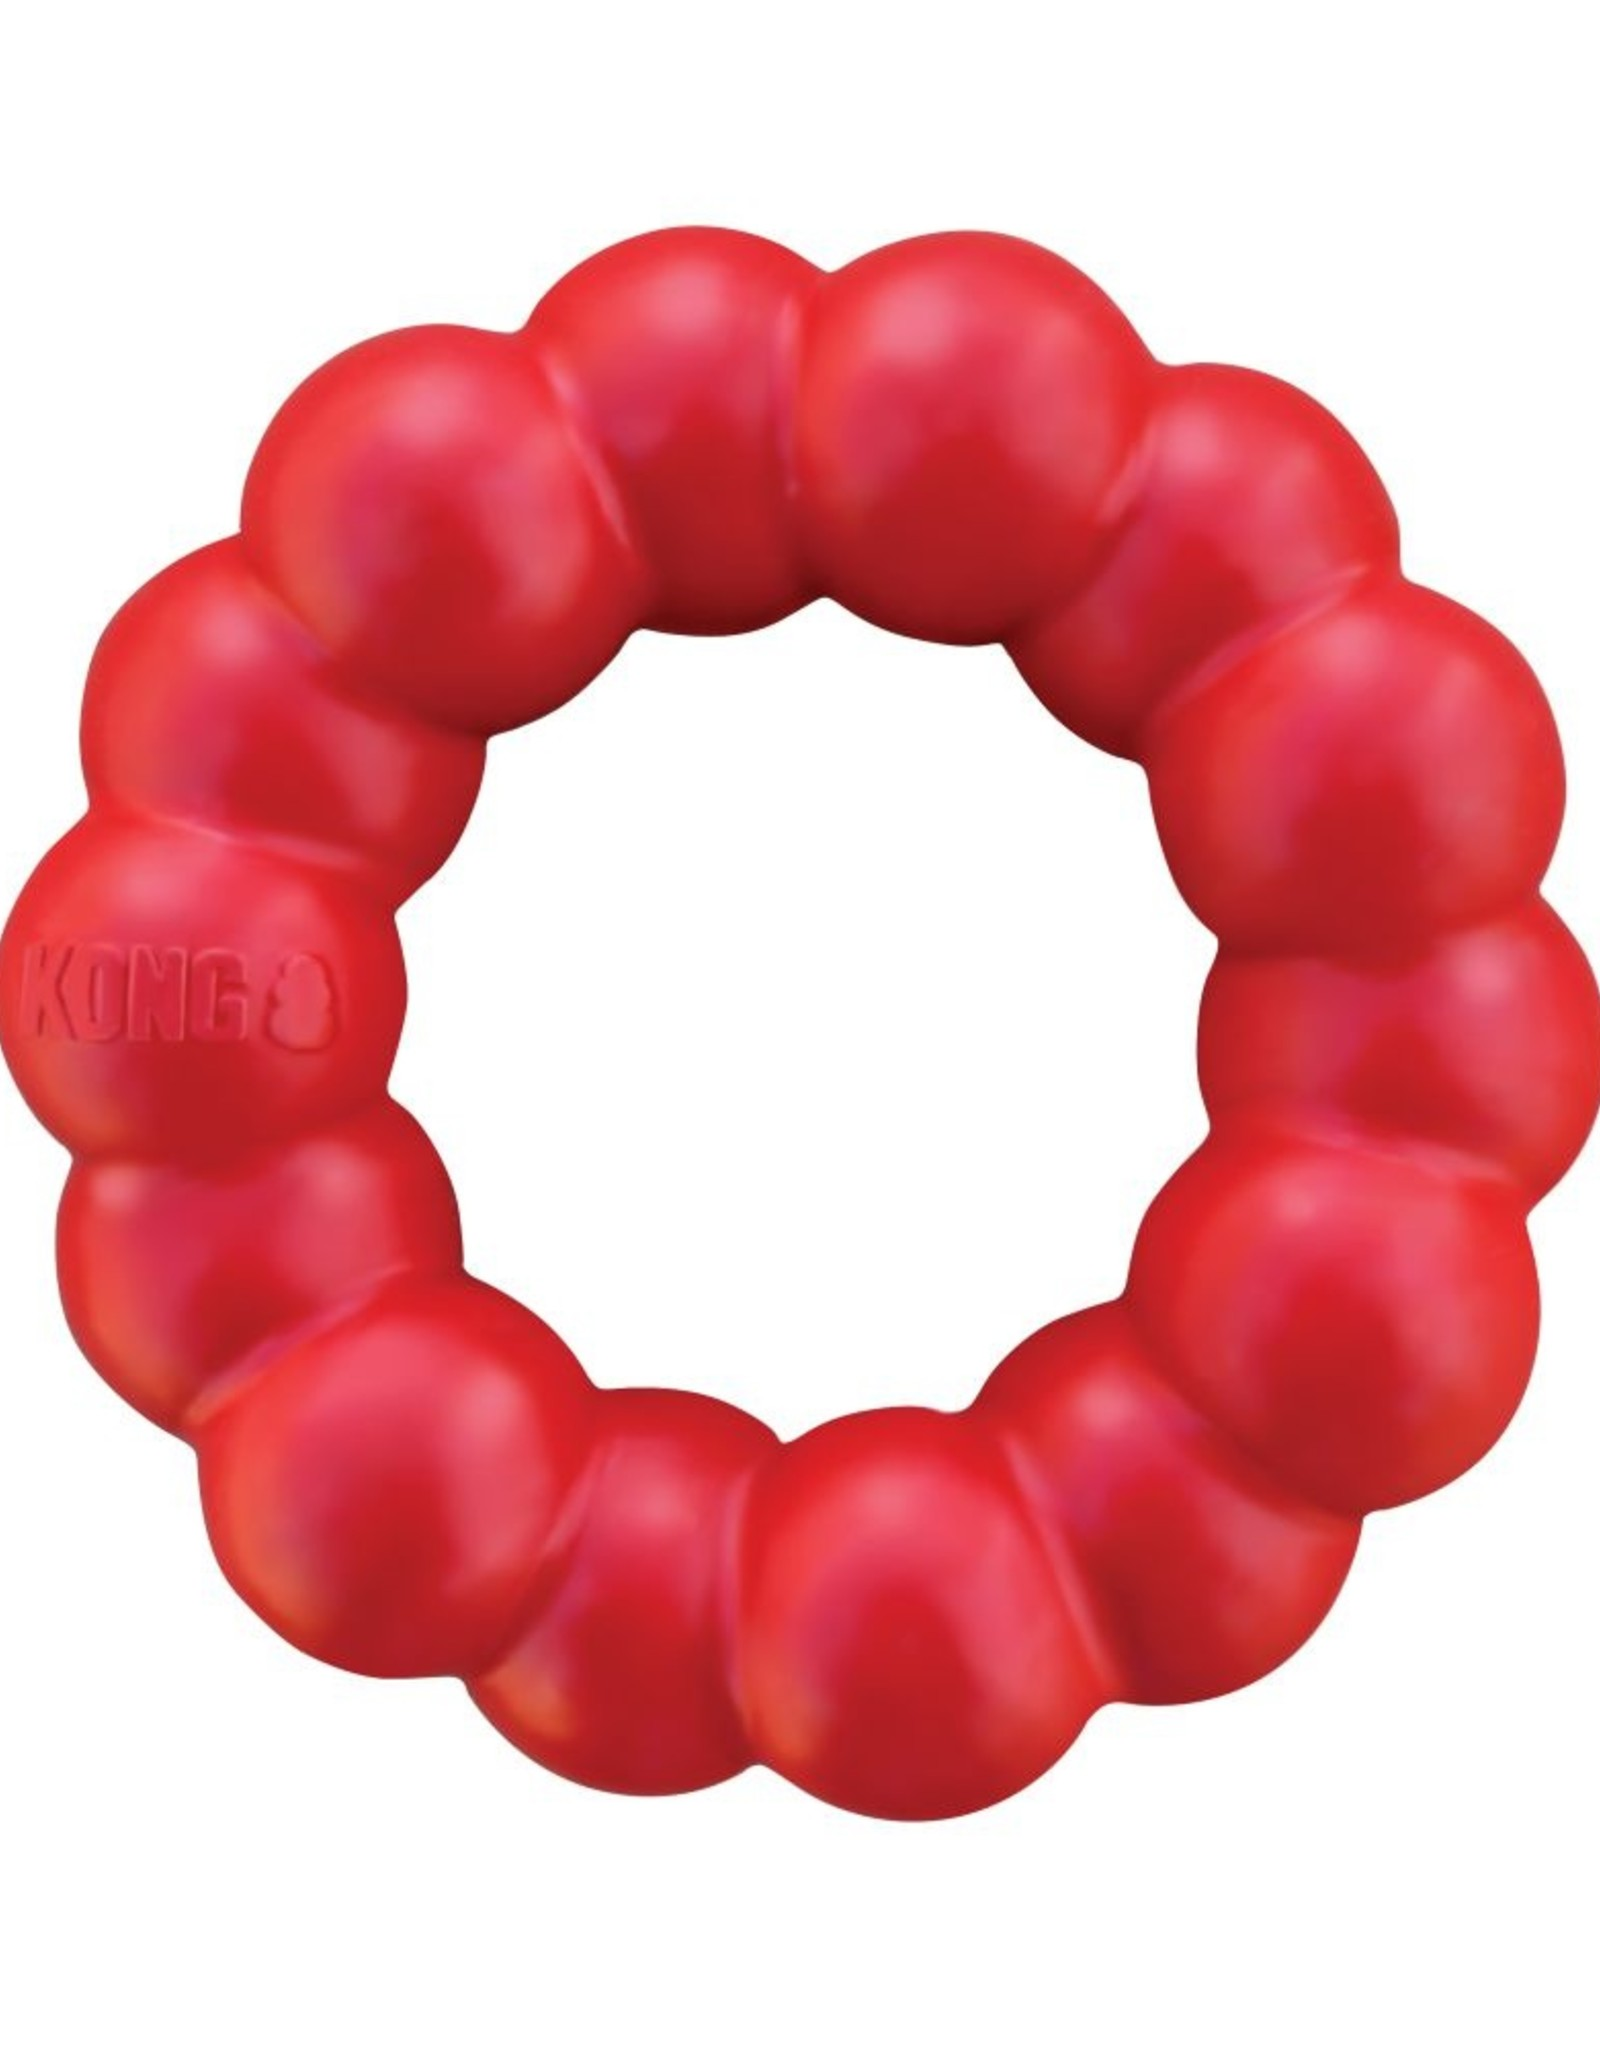 KONG Ring Small/Medium